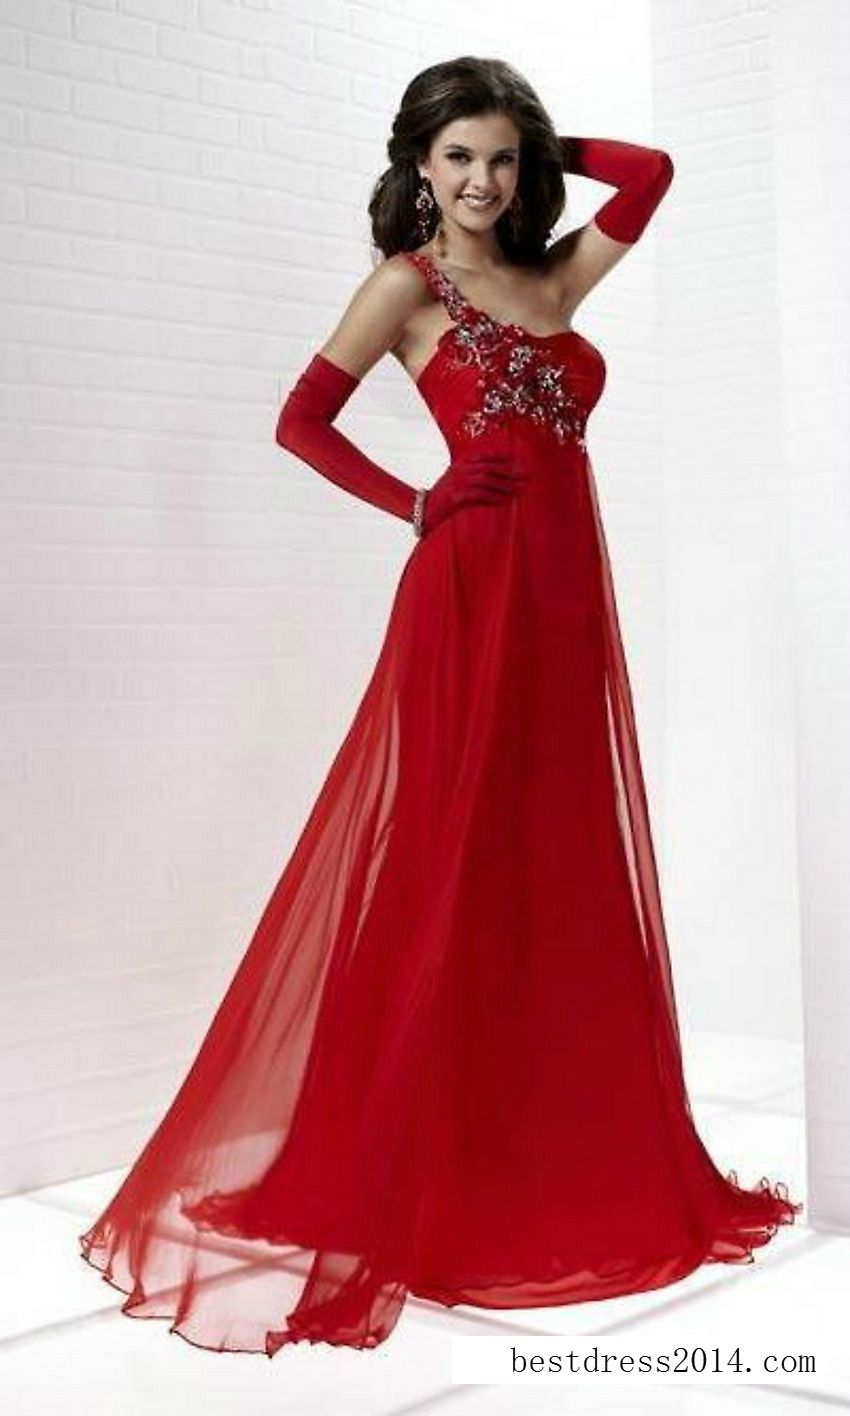 Red dress red prom dress fashionclothesjewelry pinterest